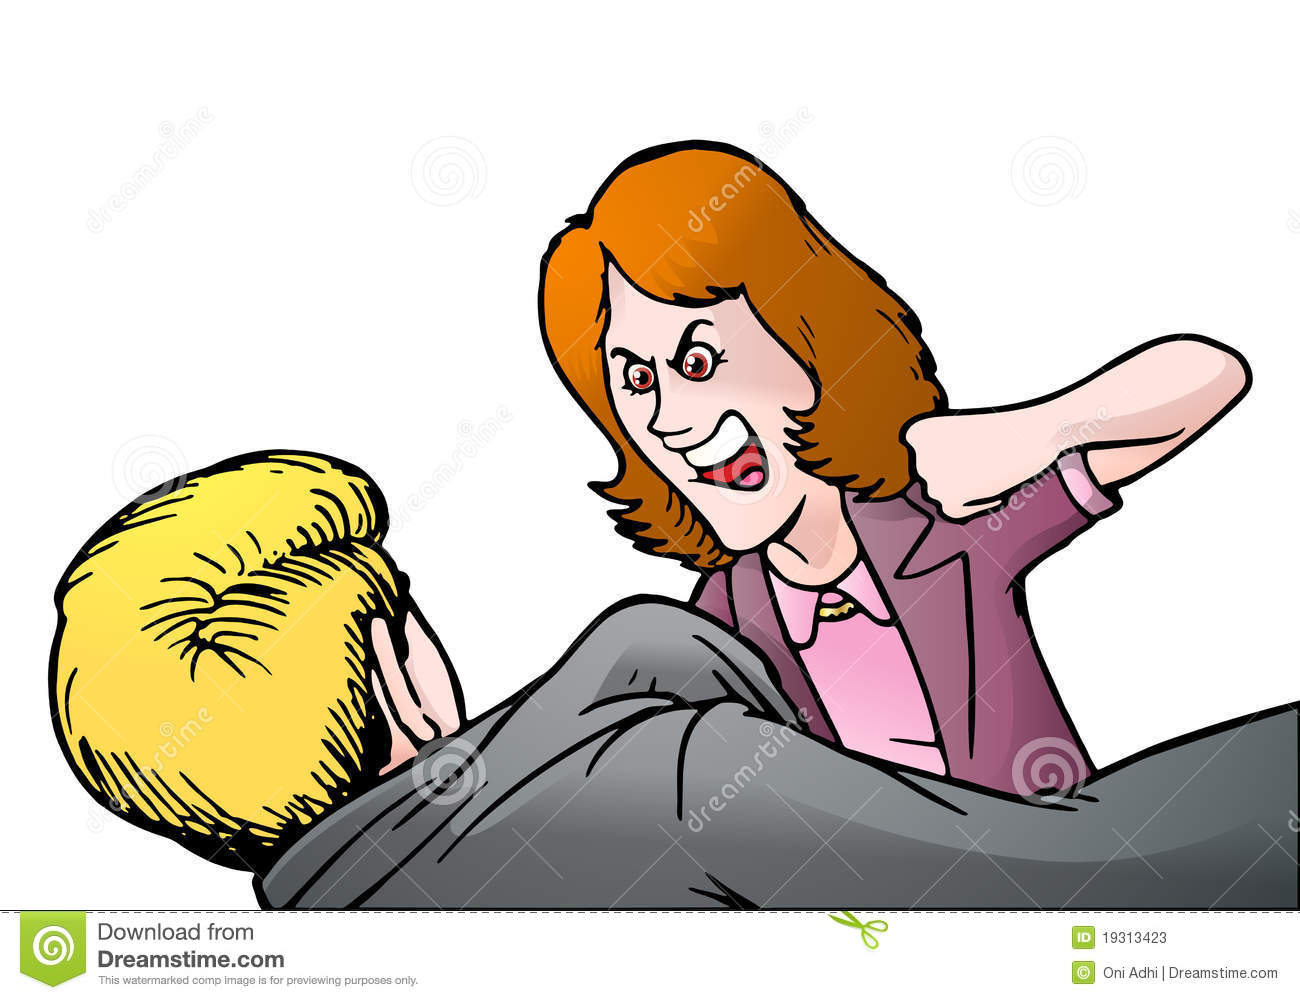 Angry Person Clip Art | Clipart Panda - Free Clipart Images